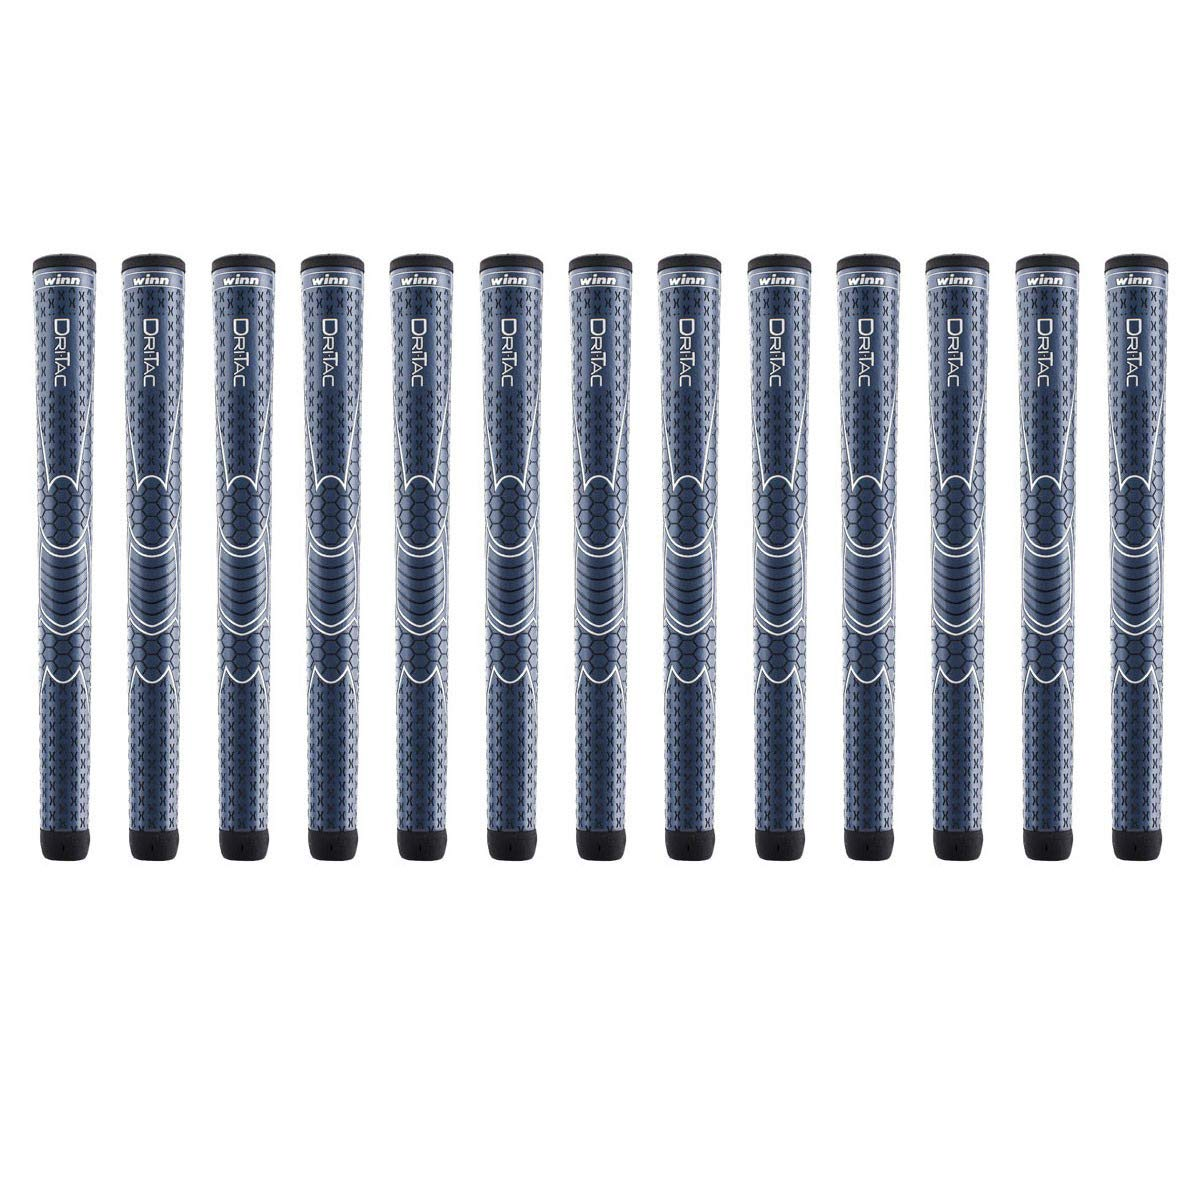 Winn Dri-Tac Oversize +1/8 inch Navy Blue 13 Piece Golf Grip Bundle (